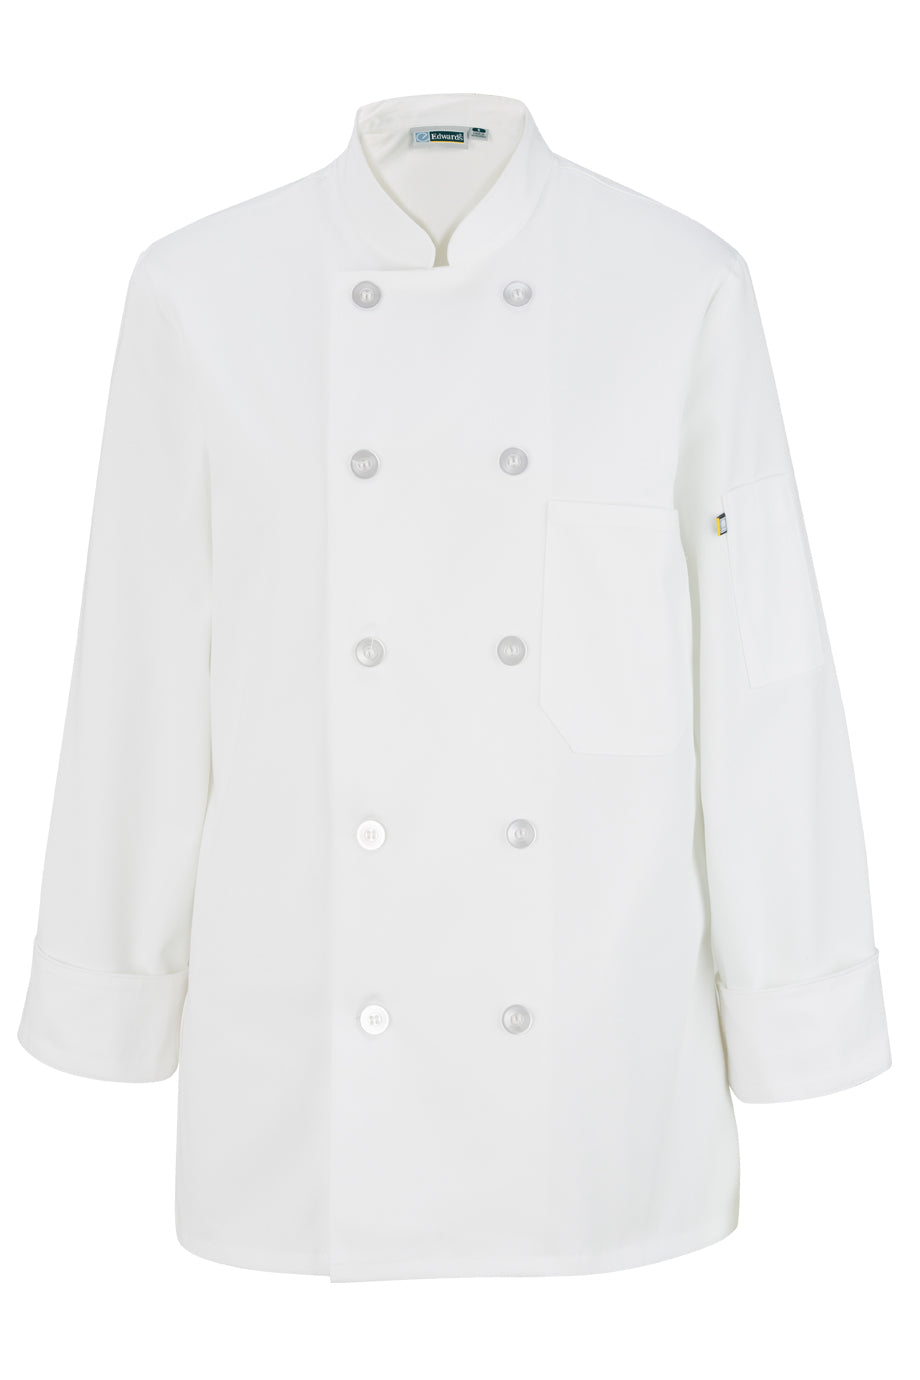 Edwards Ladies 10 Button Long Sleeve Chef Coat